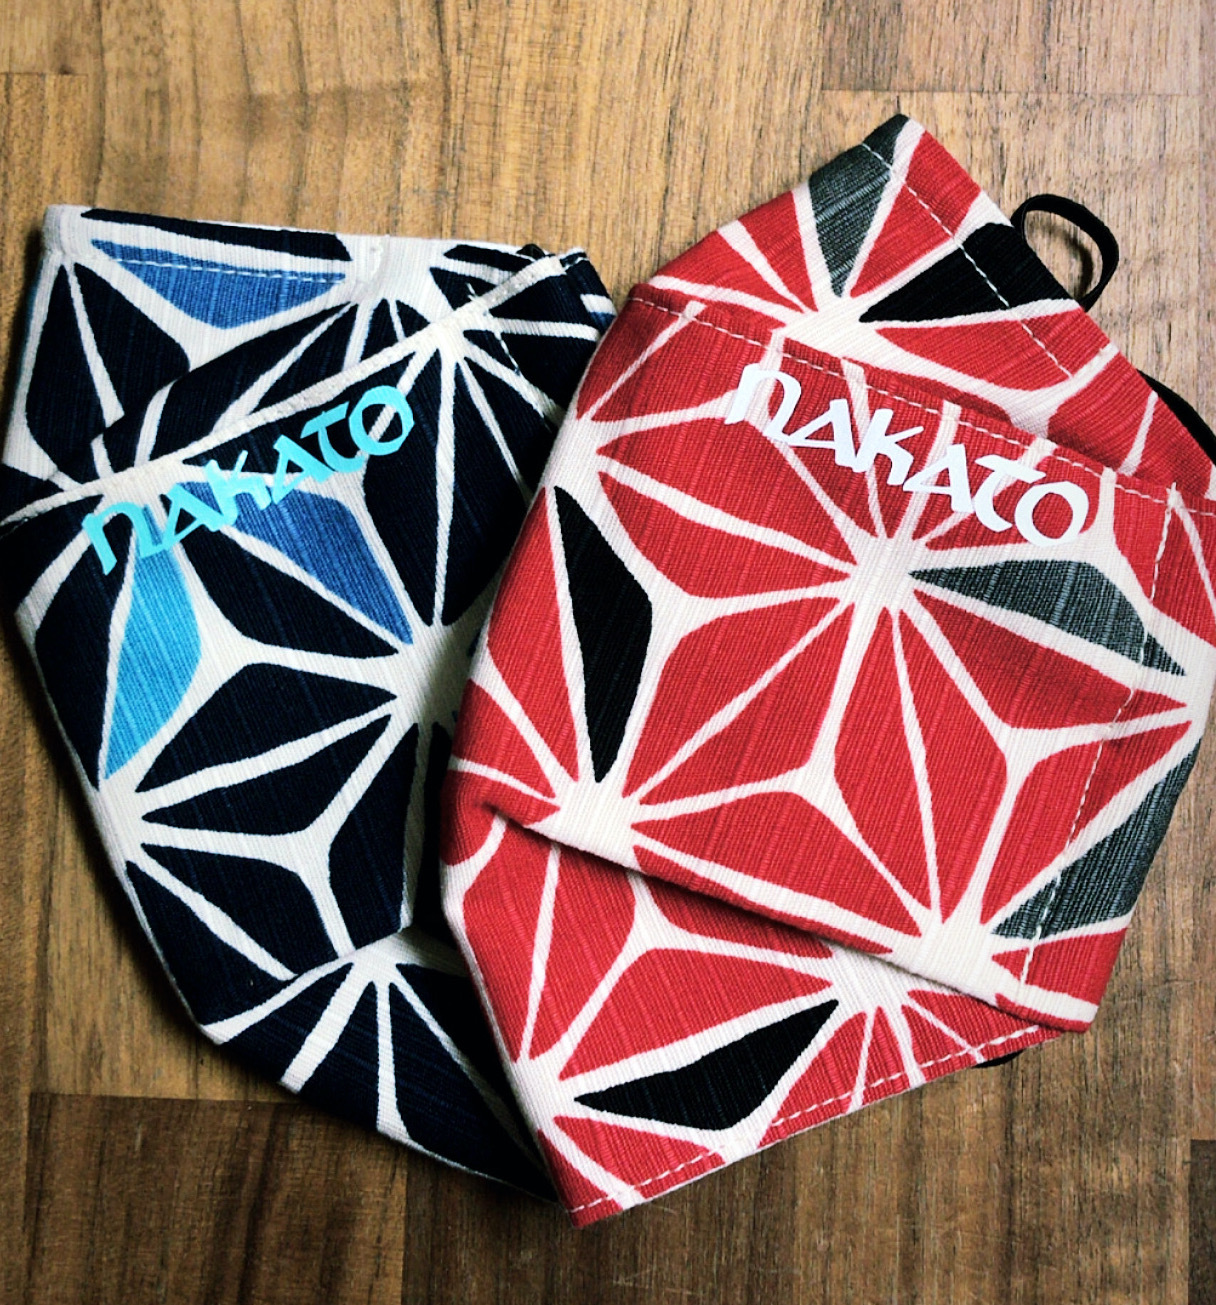 Two Japanese-inspired pattern masks in shades of red with the Nakato logo in Atlanta